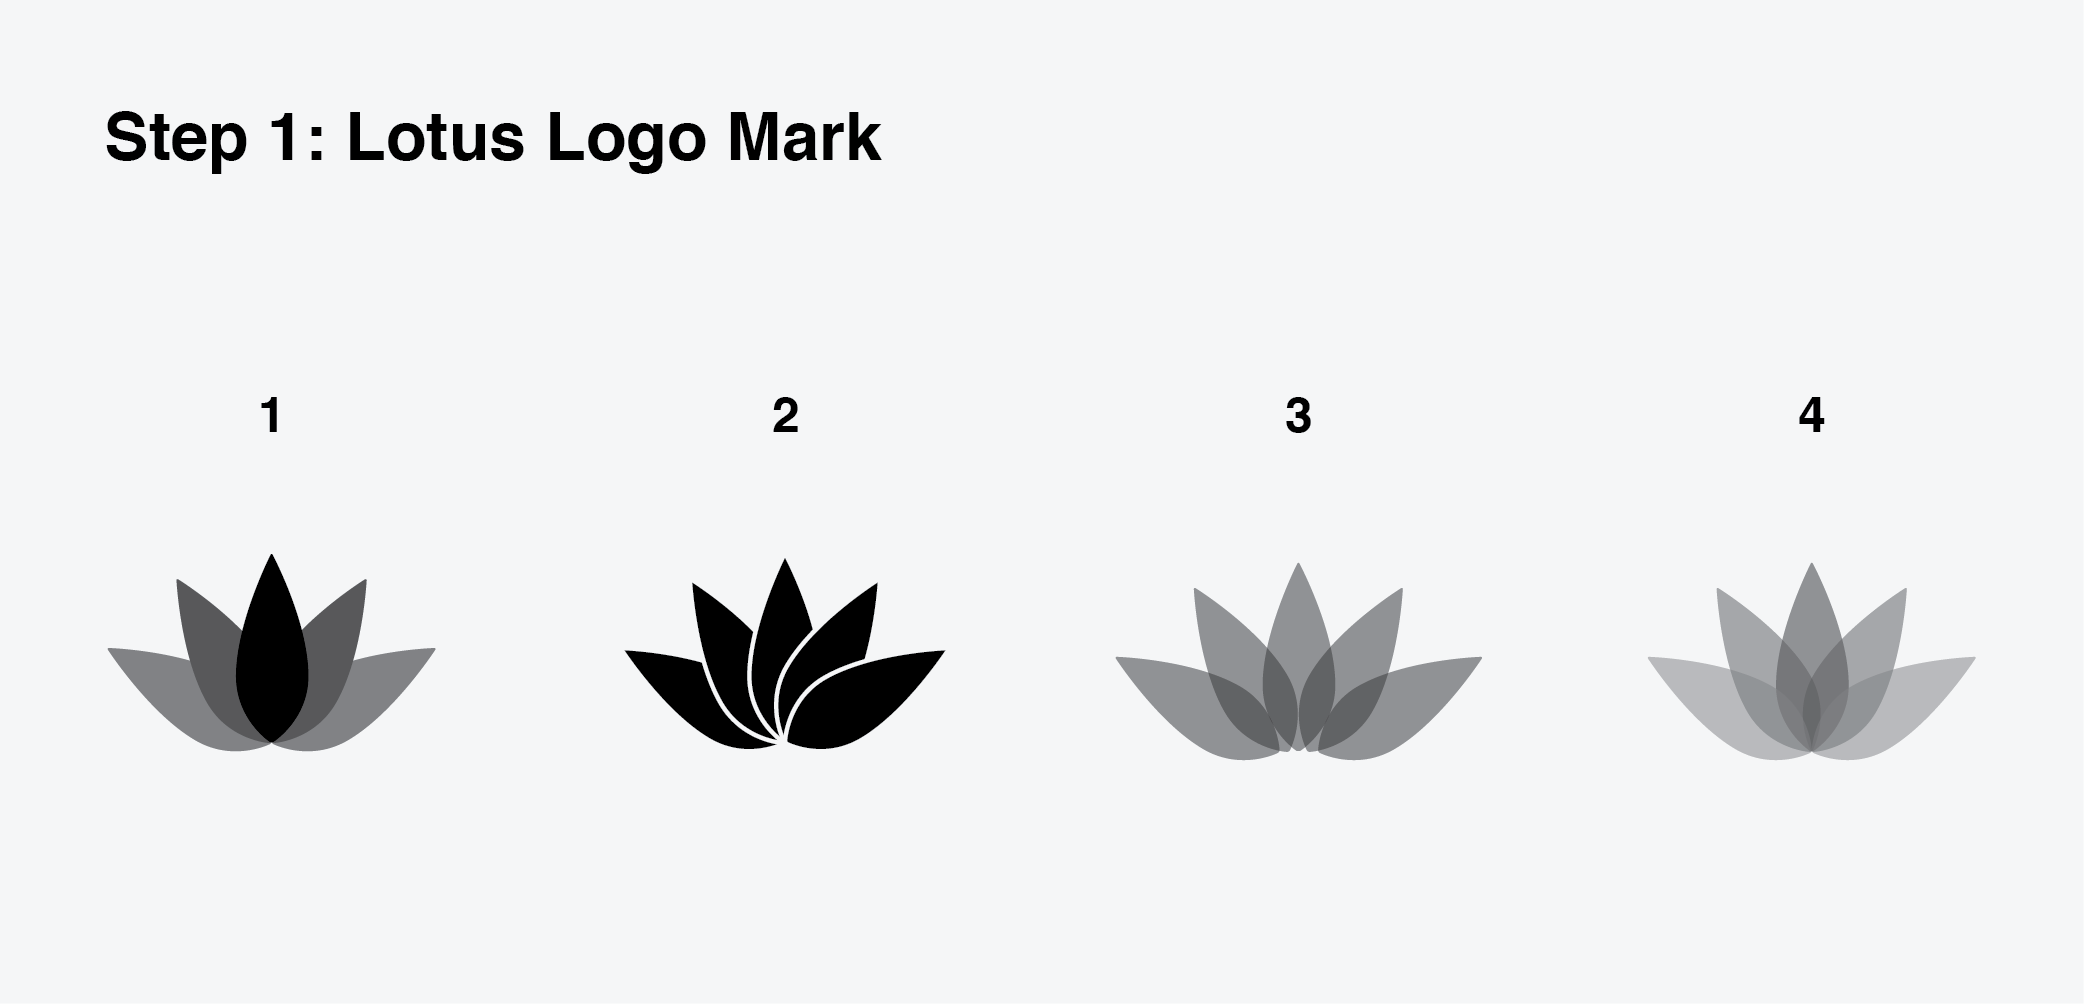 Variations of possible lotus logo marks. Option 4 was selected for its complexity through diversity of shades, created by the overlapping of opaque grey leaf elements.